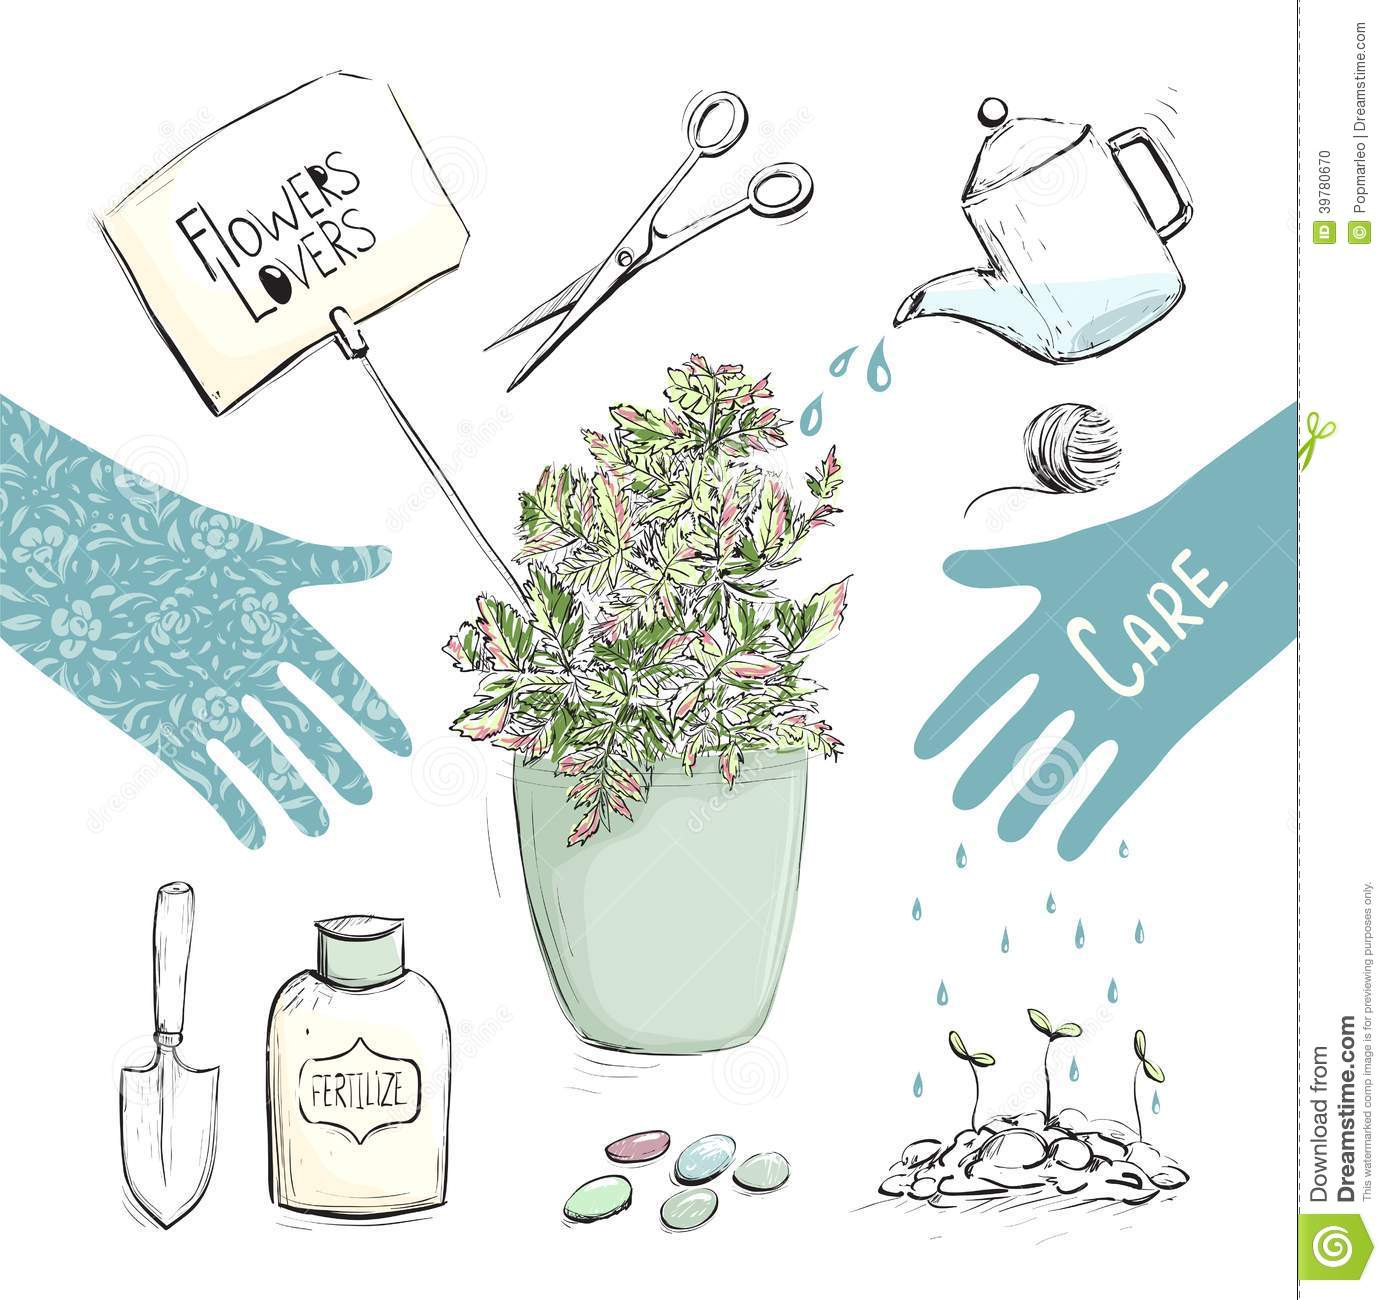 Home Utensils Sketch : Home Plants Or Gardening Tools Collection Stock Vector - Image ...